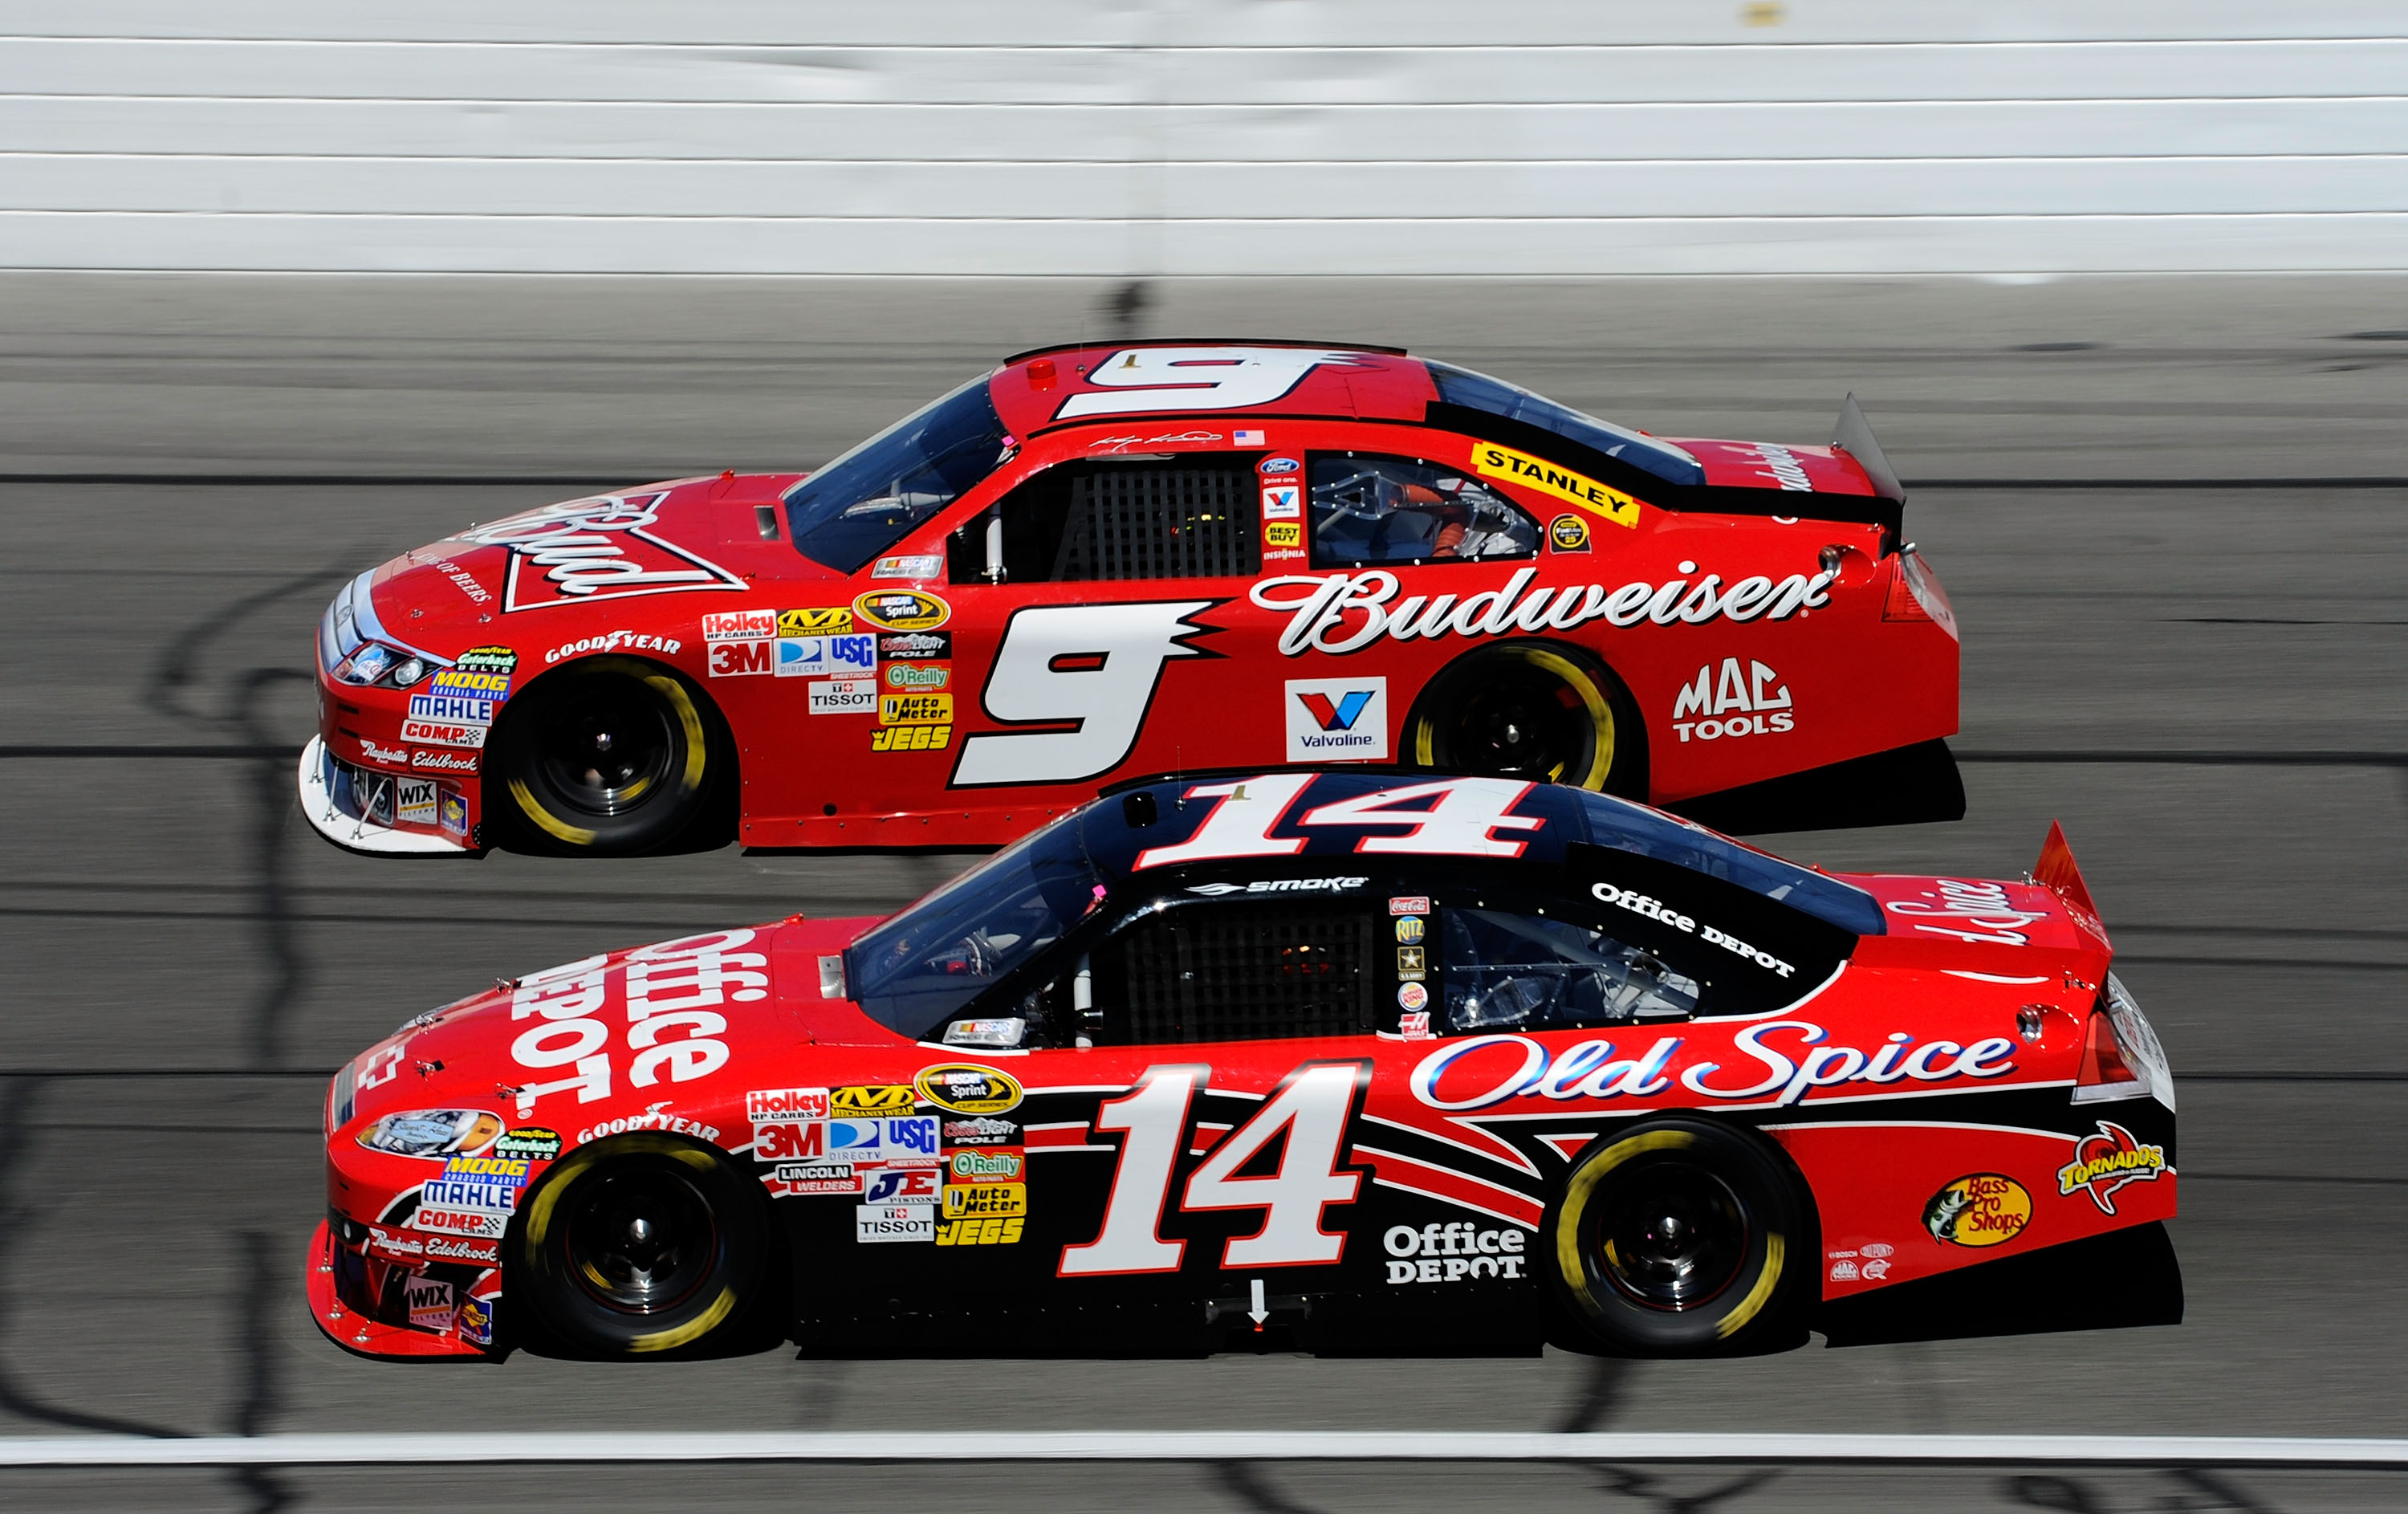 KANSAS CITY, KS - OCTOBER 03:  Tony Stewart, driver of the #14 Office Depot Chevrolet, races Kasey Kahne, driver of the #9 Budweiser Ford, during the NASCAR Sprint Cup Series Price Chopper 400 on October 3, 2010 in Kansas City, Kansas.  (Photo by John Har